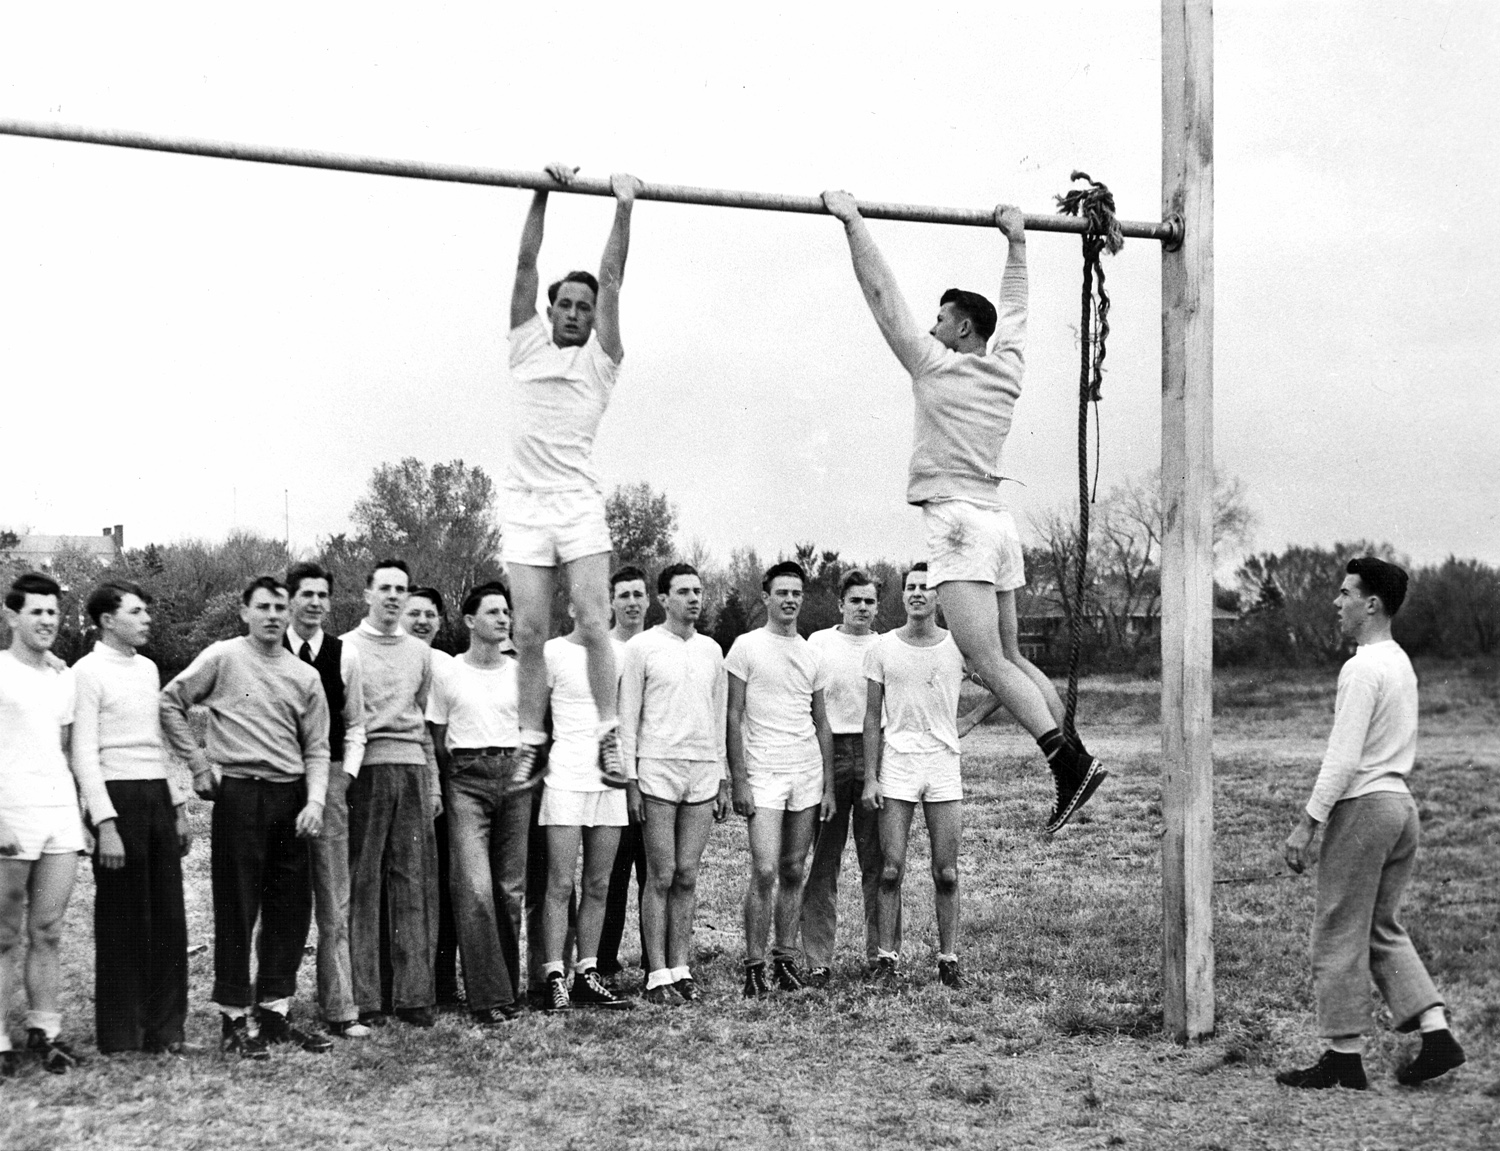 Students on Clyde Baller's hazard course at the University of Omaha, 1942